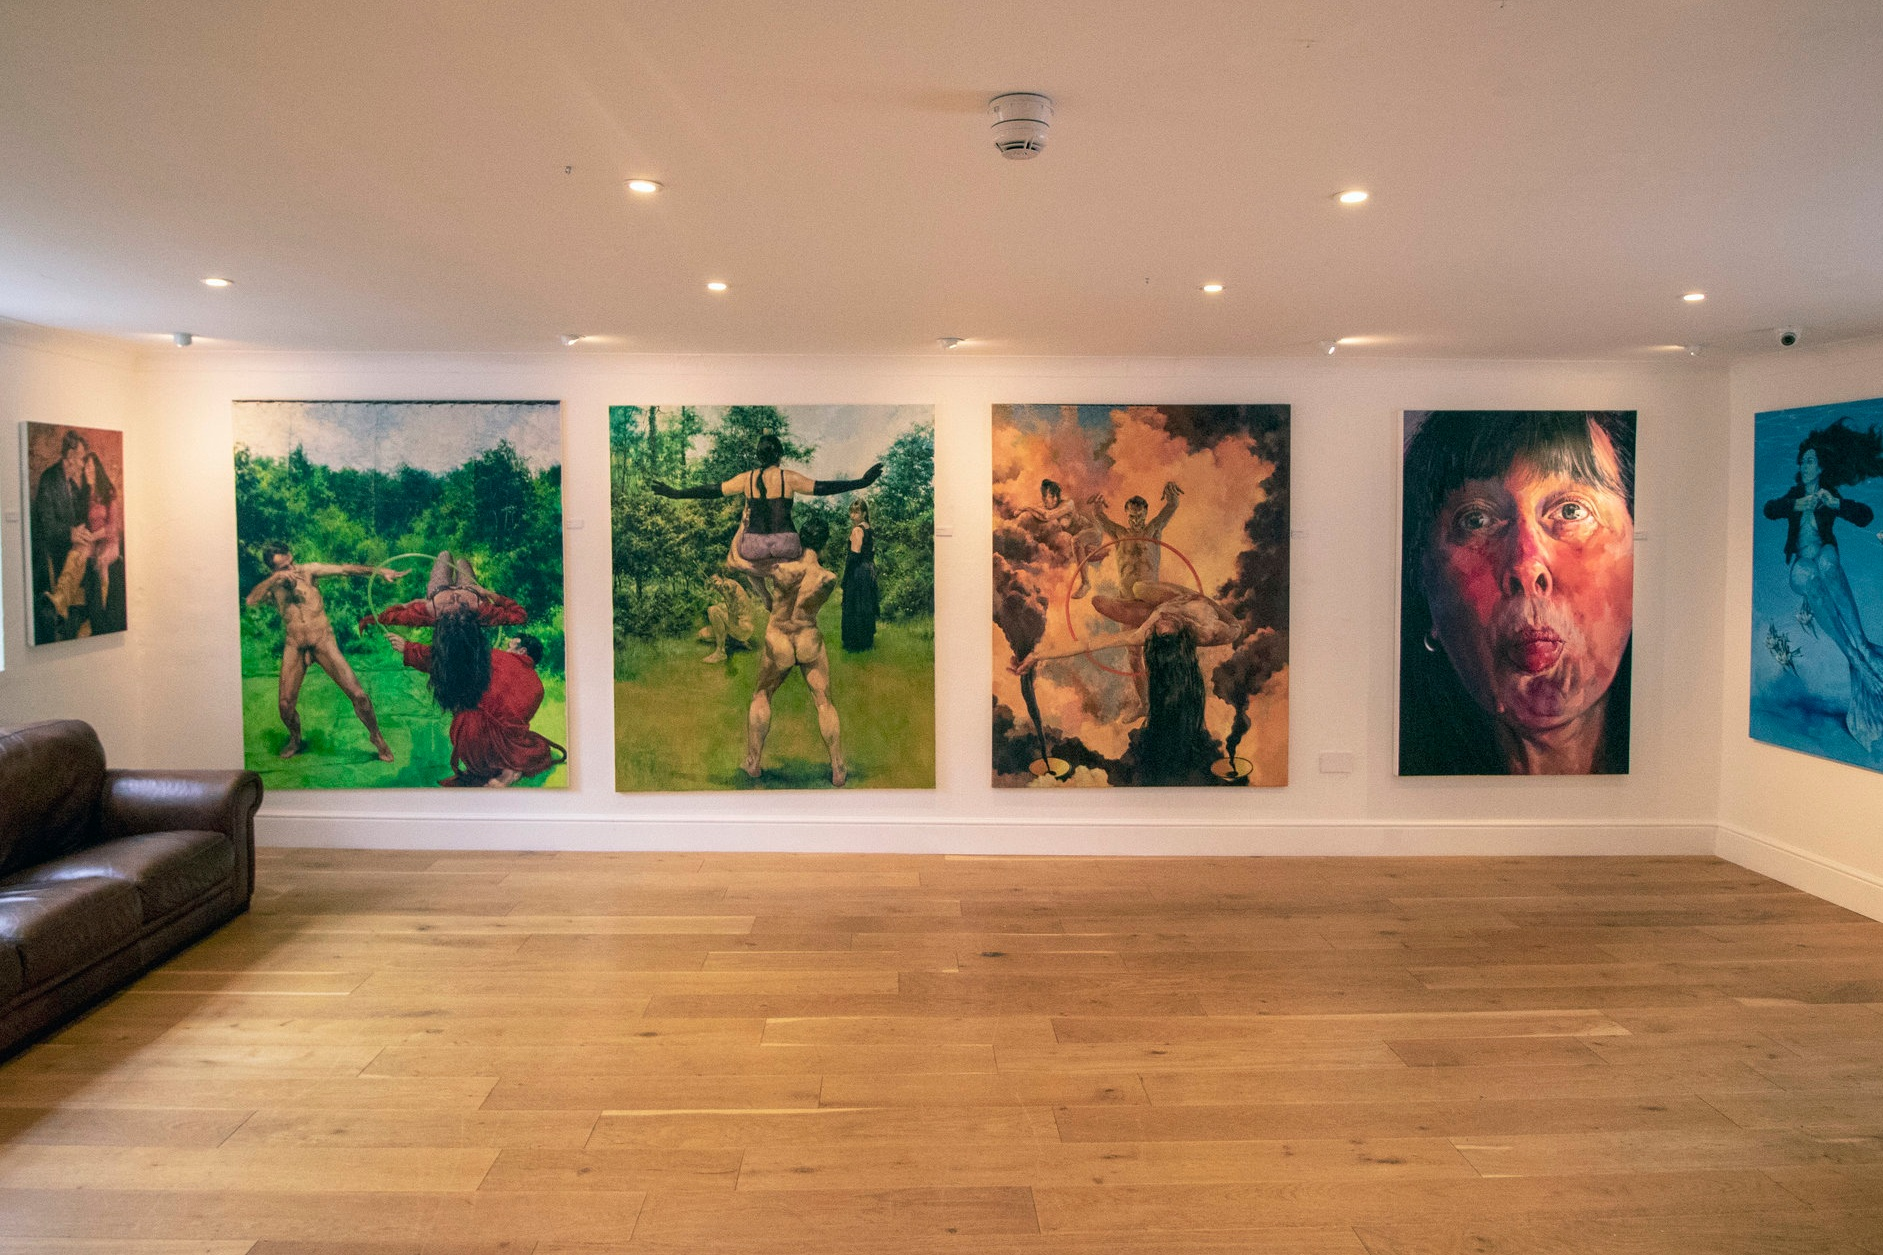 Exhibitions - Visit our gallery and see what's on, or make an inquiry into displaying your own work.